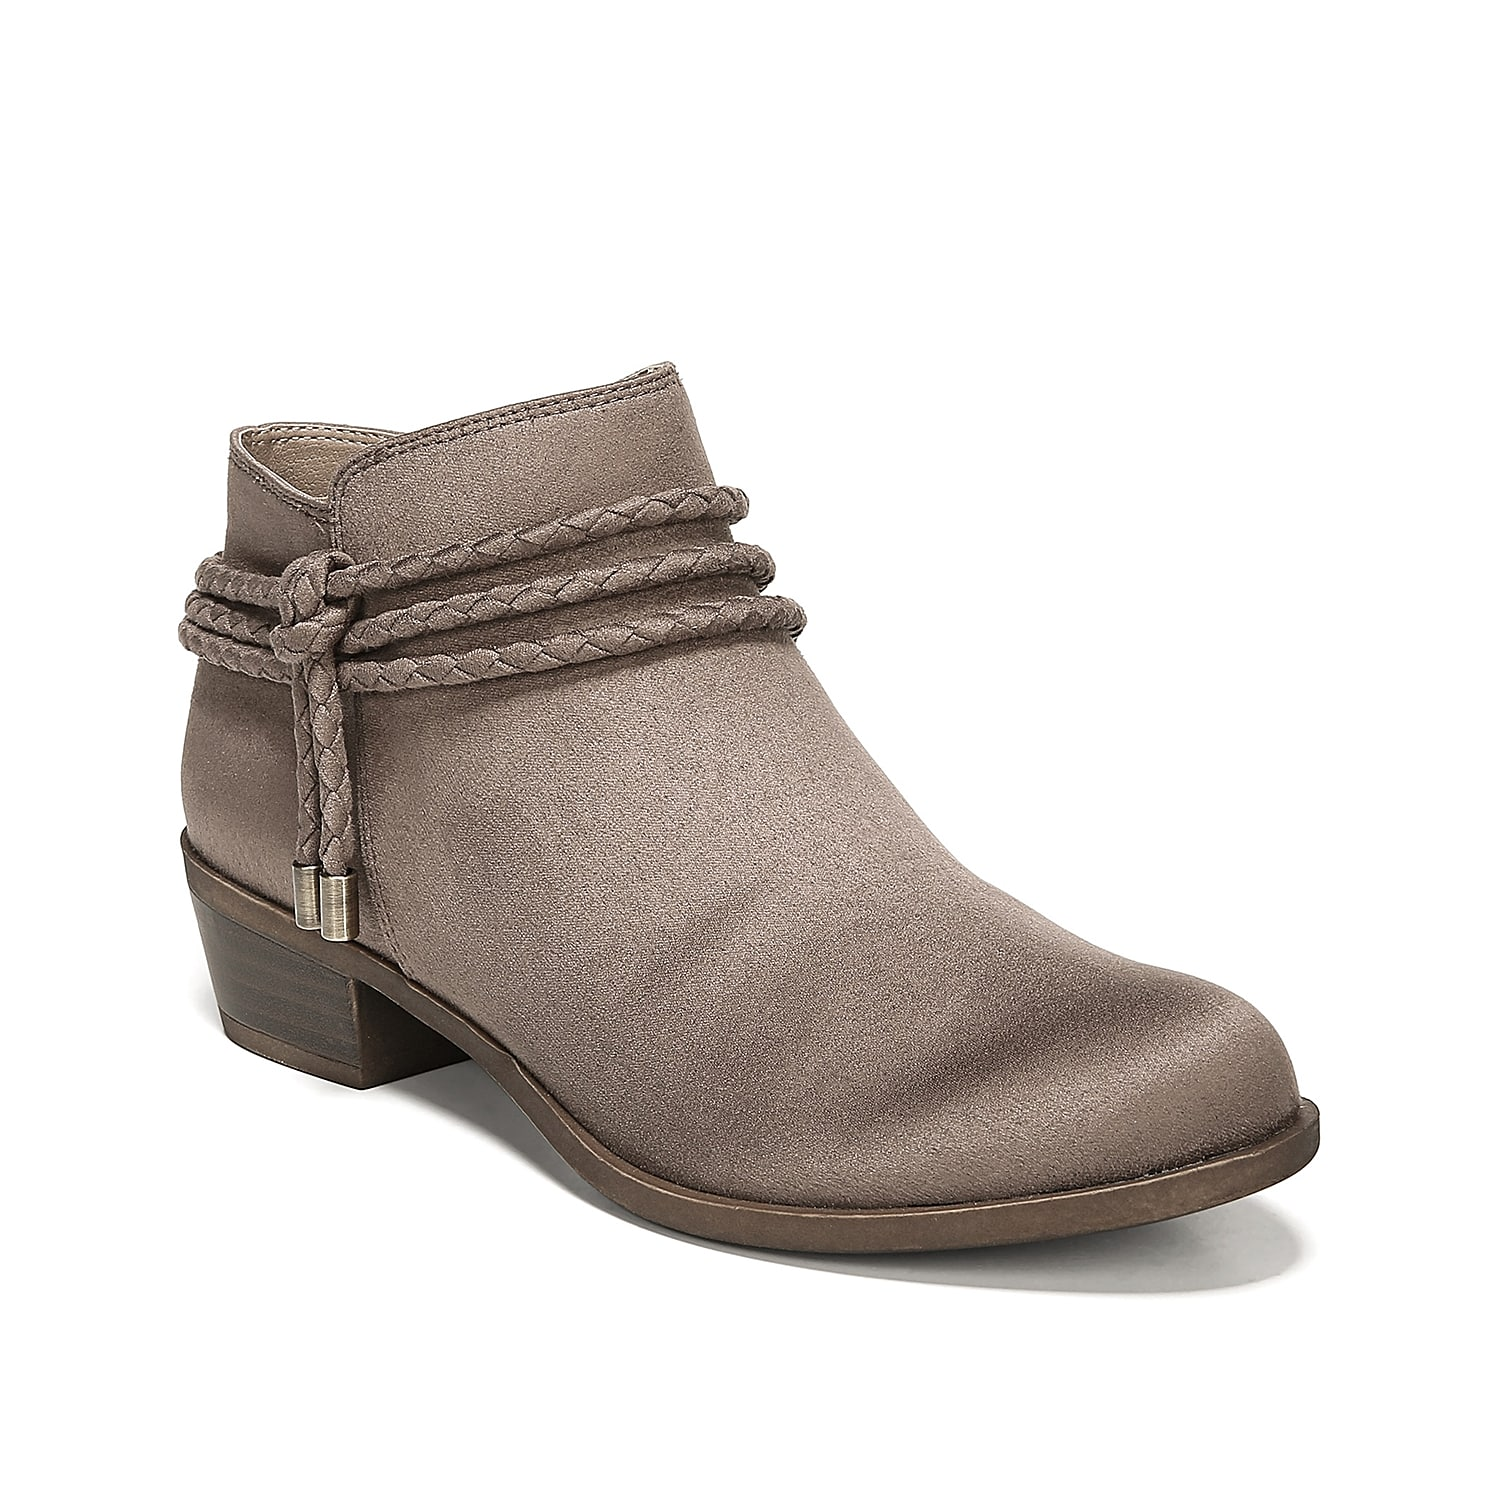 Braided straps circle around the Andrea bootie from LifeStride and bring a free-spirited accent to your look. These ankle boots are grounded with a SoftSystem® footbed to keep you comfortable all-day long. Click here for Boot Measuring Guide.